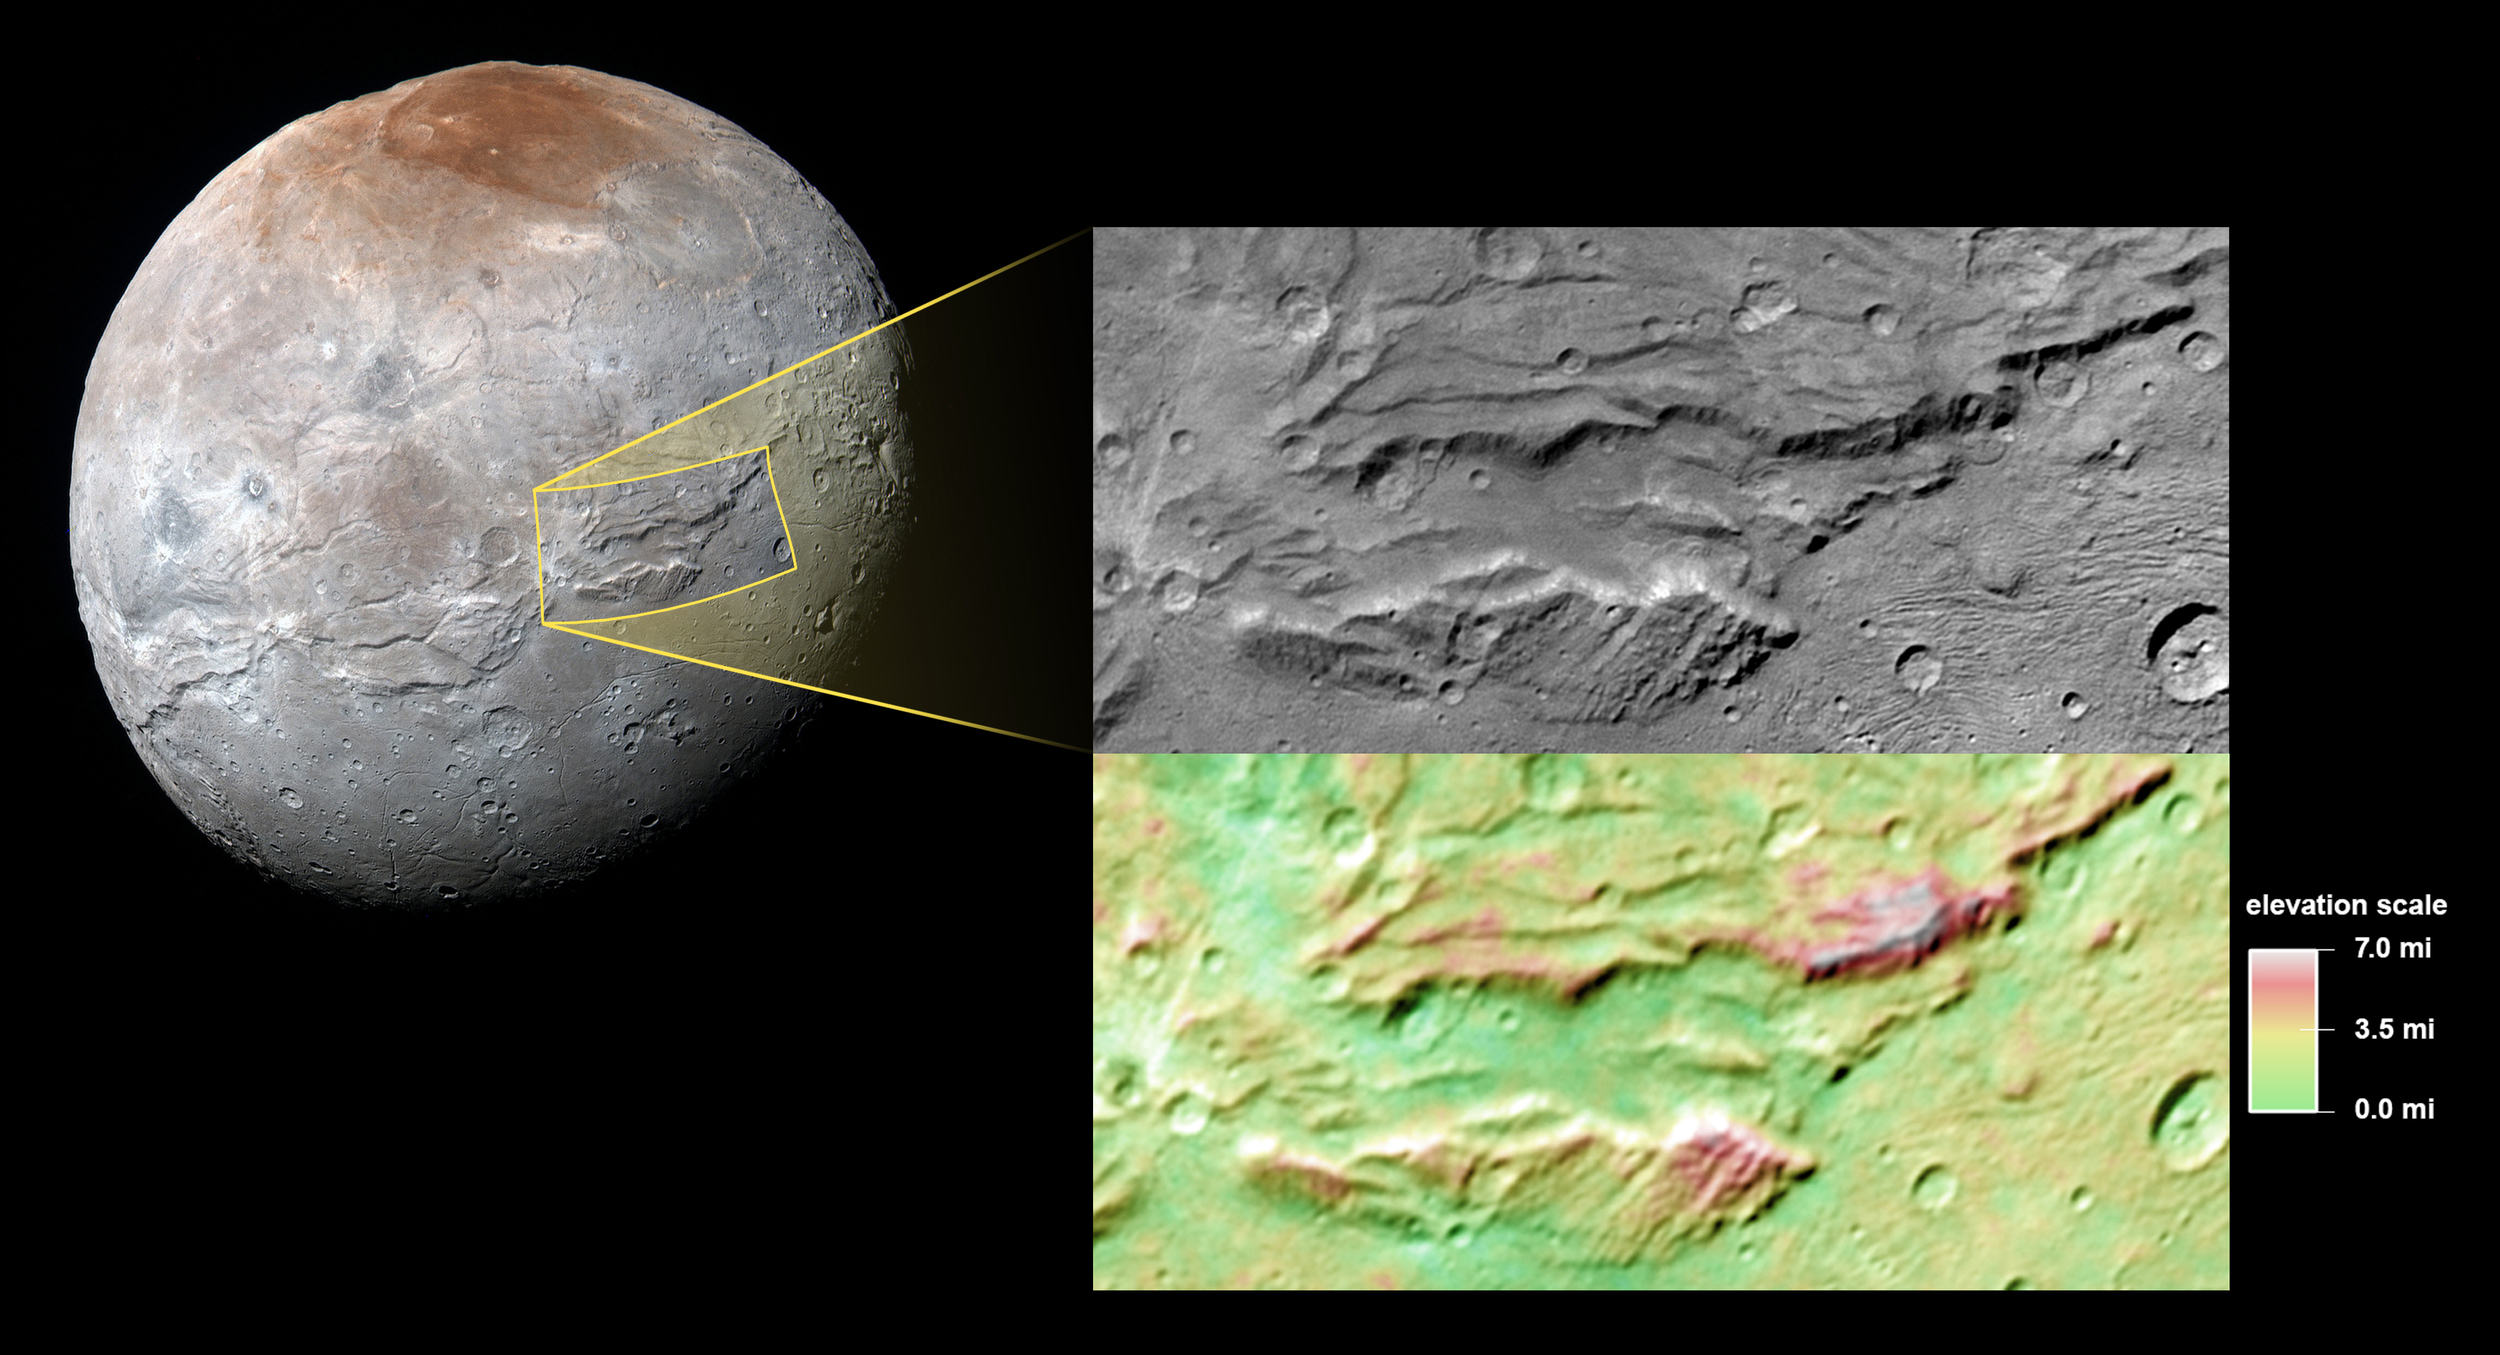 A close-up of the canyons on Charon, Pluto's big moon, taken by New Horizons during its close approach to the Pluto system last July. Multiple views taken by New Horizons as it passed by Charon allow stereo measurements of topography, shown in the color-coded version of the image. The scale bar indicates relative elevation. - Image   Credits: NASA/JHUAPL/SwRI